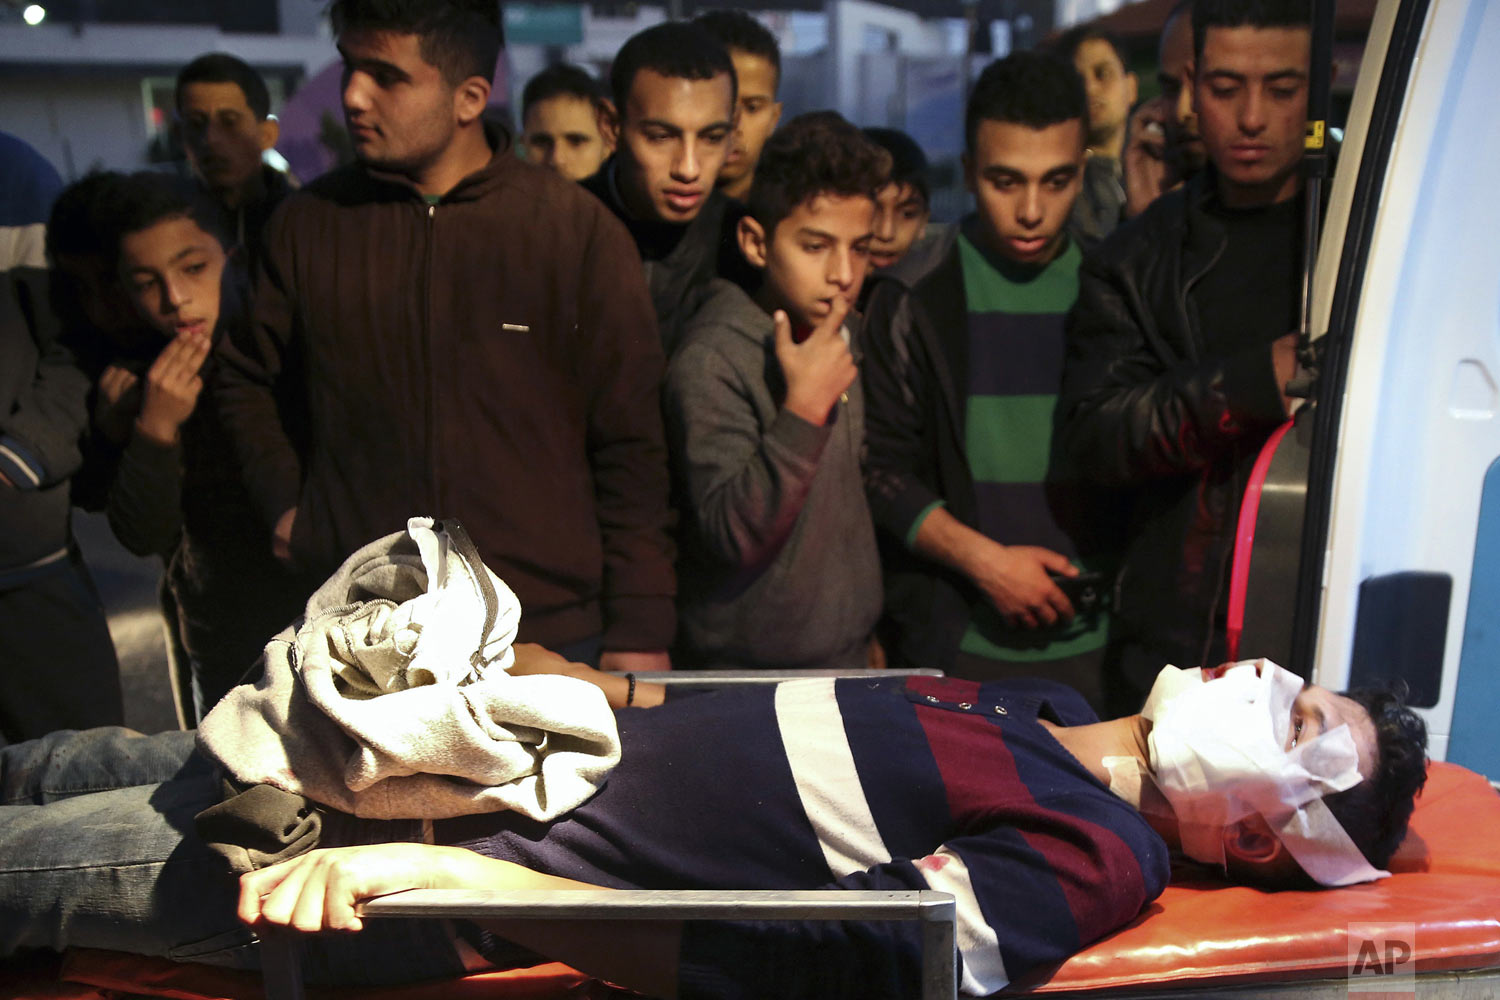 Palestinians watch medics move a wounded youth who was shot by Israeli troops during a protest at the Gaza Strip's border with Israel, into the treatment room of Shifa hospital in Gaza City, Friday, Dec. 14, 2018. Hamas has orchestrated demonstrations on a weekly basis since March, demanding an end to a crippling Israeli-Egyptian blockade on the territory. (AP Photo/Adel Hana)